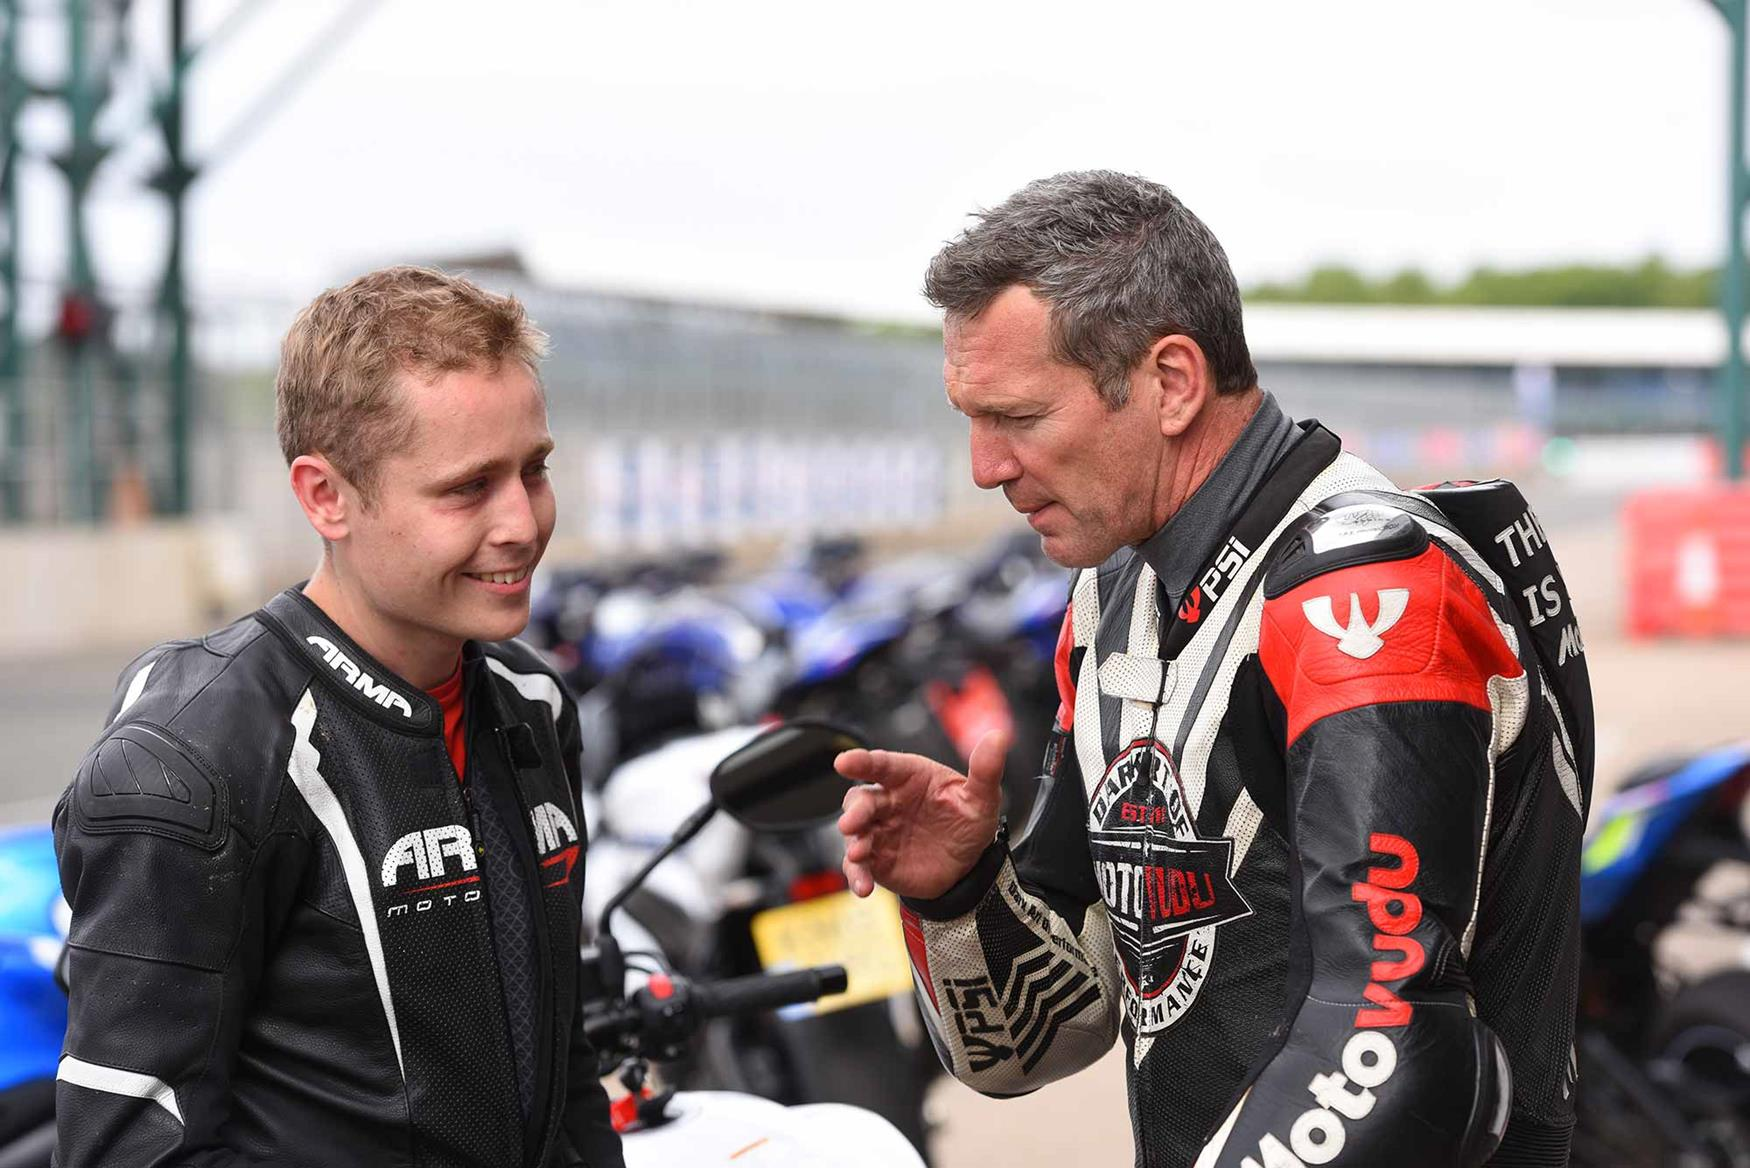 Simon Crafar talks with MCN's Dan Sutherland at Silverstone